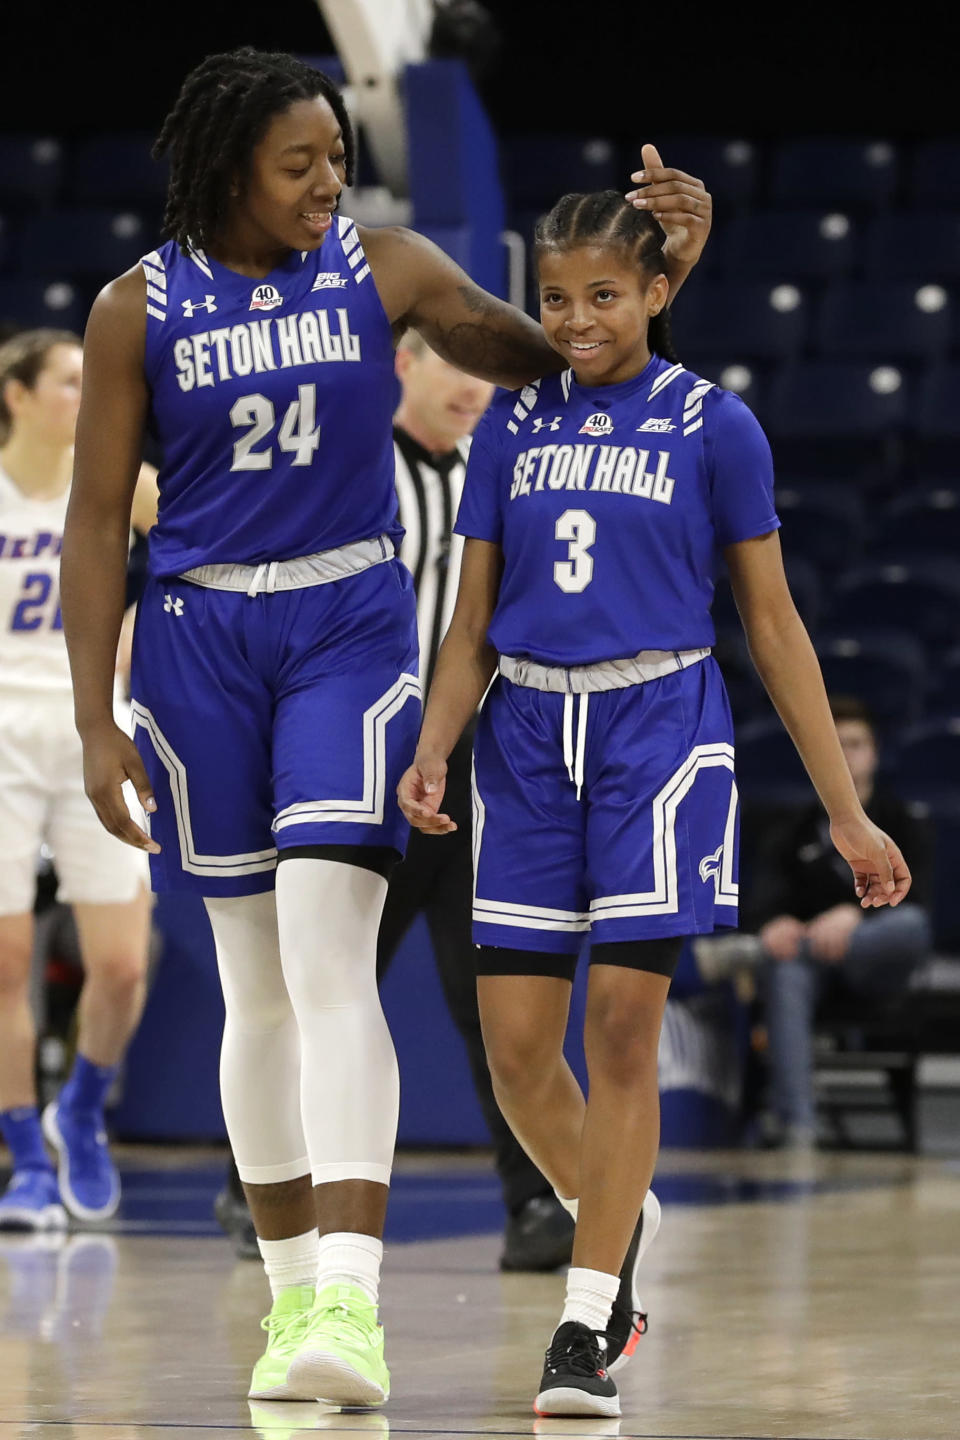 Seton Hall guard Lauren Park-Lane, right, is congratulated by forward Shadeen Samuels after scoring a basket during the first half of an NCAA college basketball game against DePaul in the Big East women's tournament semifinals, Sunday, March 8, 2020, in Chicago. (AP Photo/Nam Y. Huh)